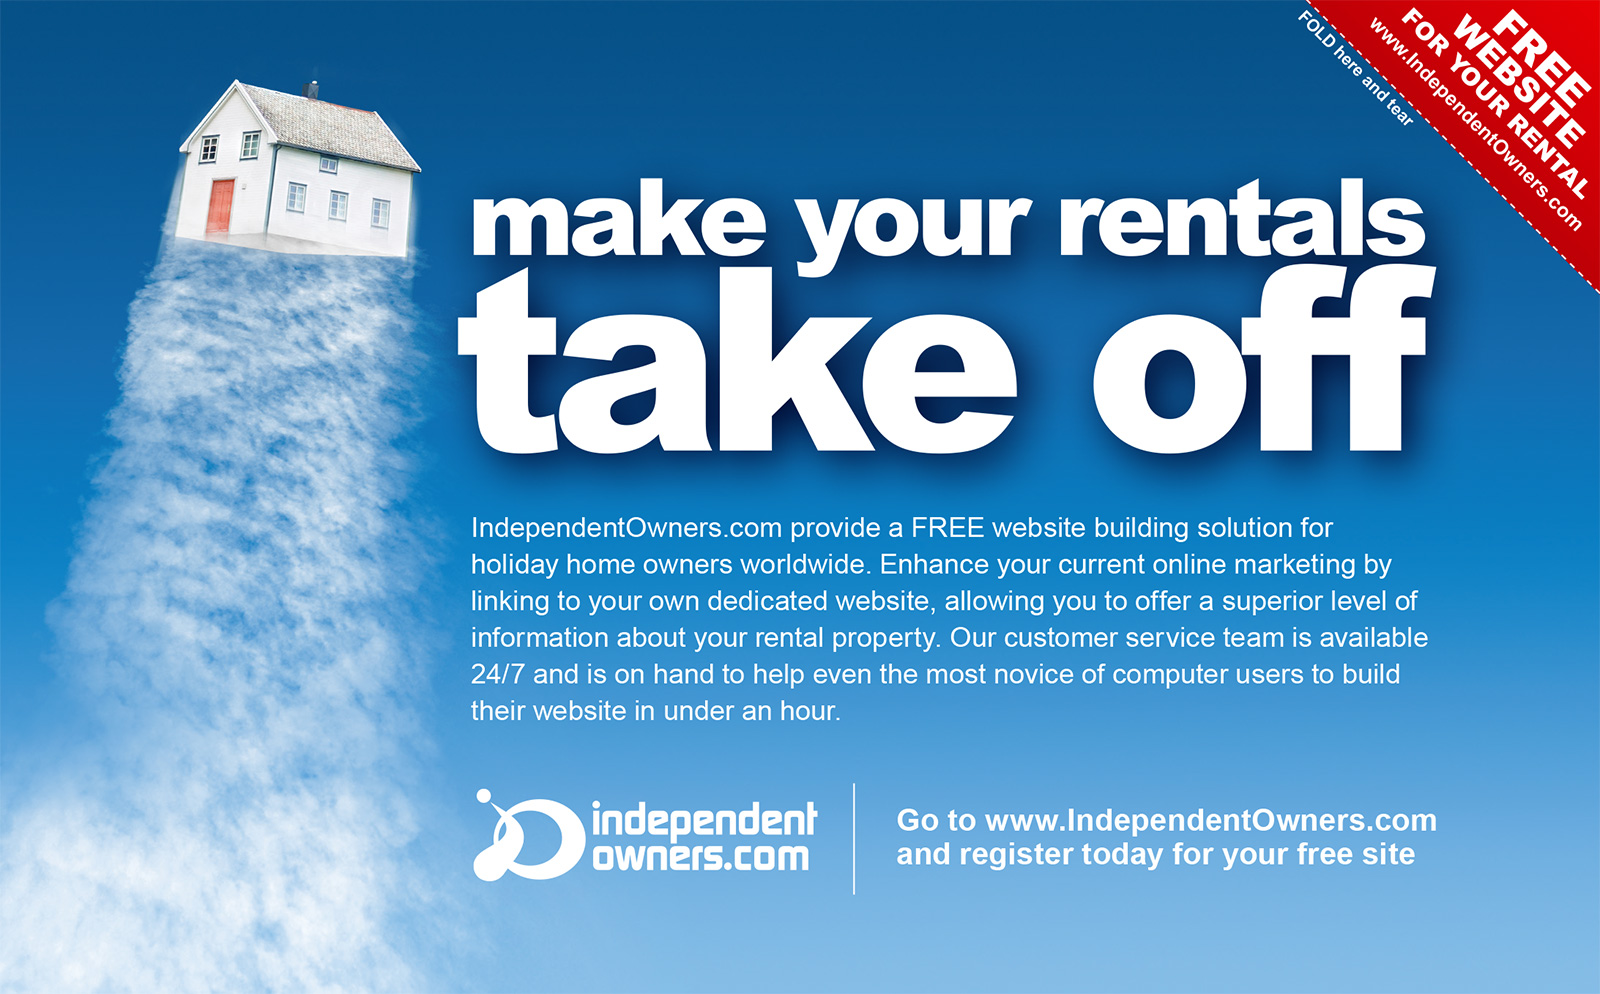 independent owners - take off ad